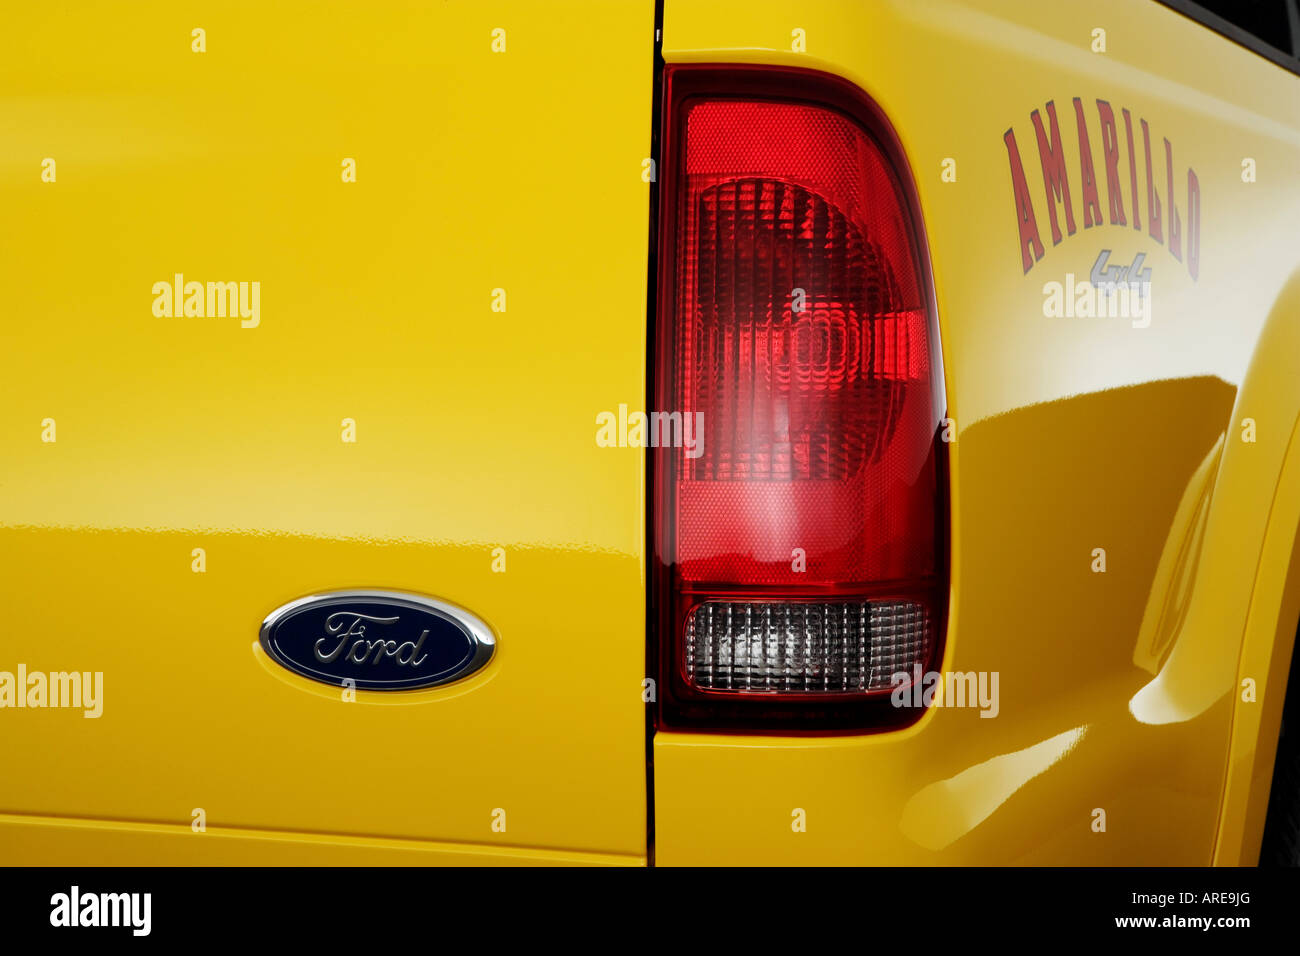 hight resolution of 2006 ford f 350 sd lariat amarillo in yellow tail light stock image